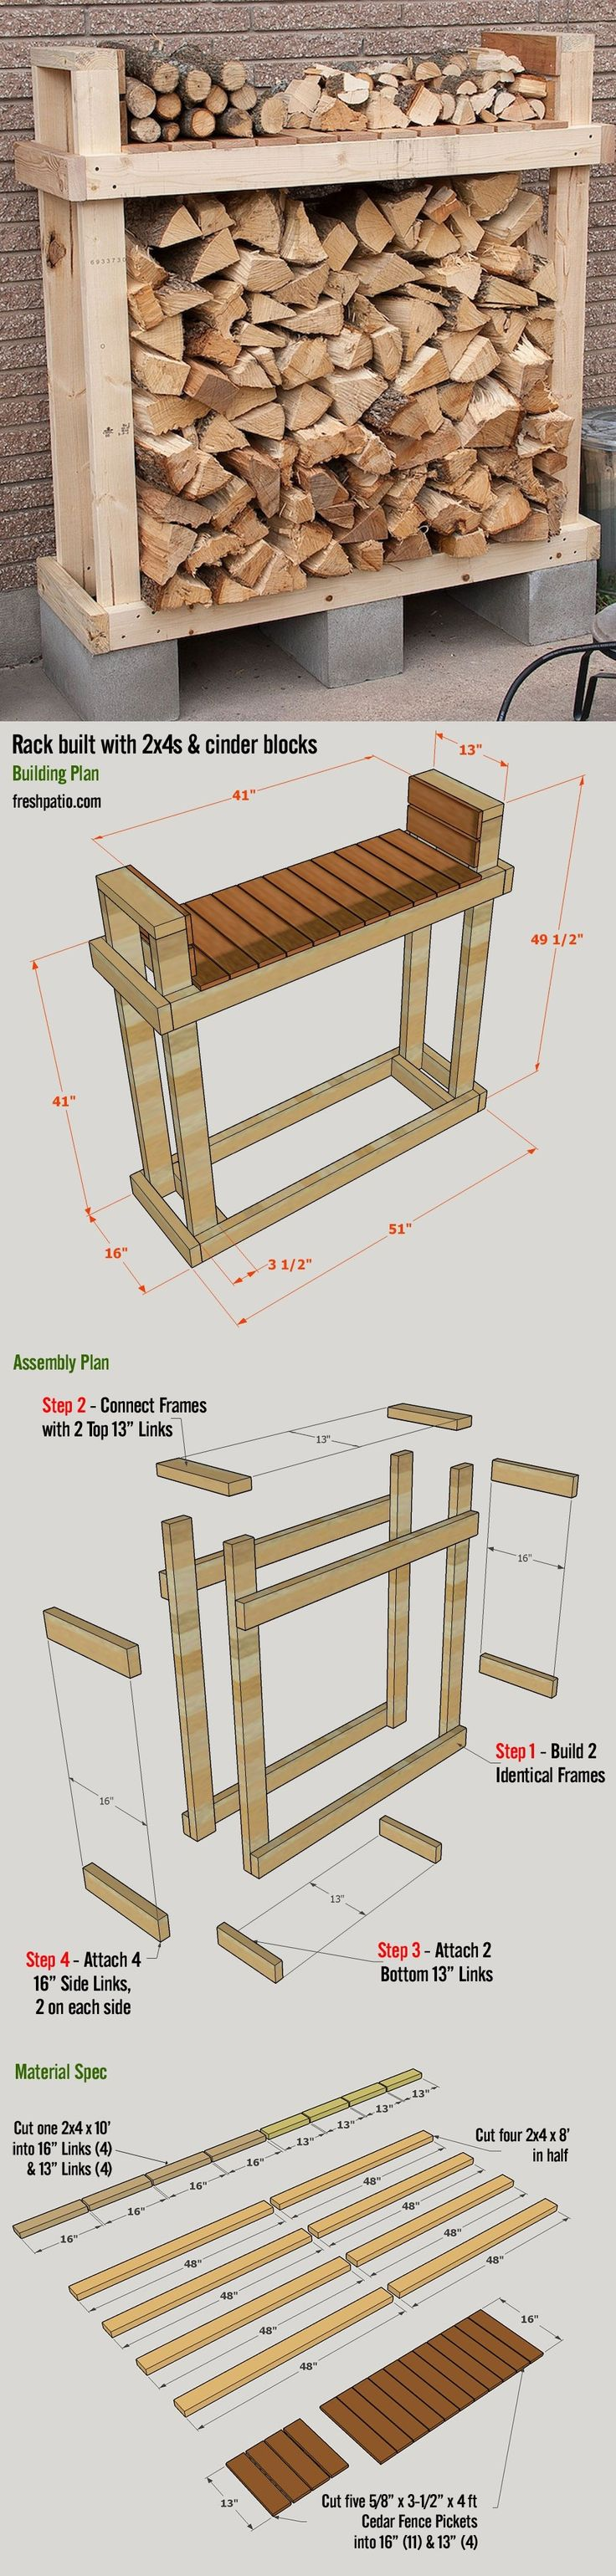 Shed Plans - Free Firewood Rack Plan - build it for $42 (including lumber, Cinder blocks and screws), with a top shelf. Now You Can Build ANY Shed In A Weekend Even If You've Zero Woodworking Experience!